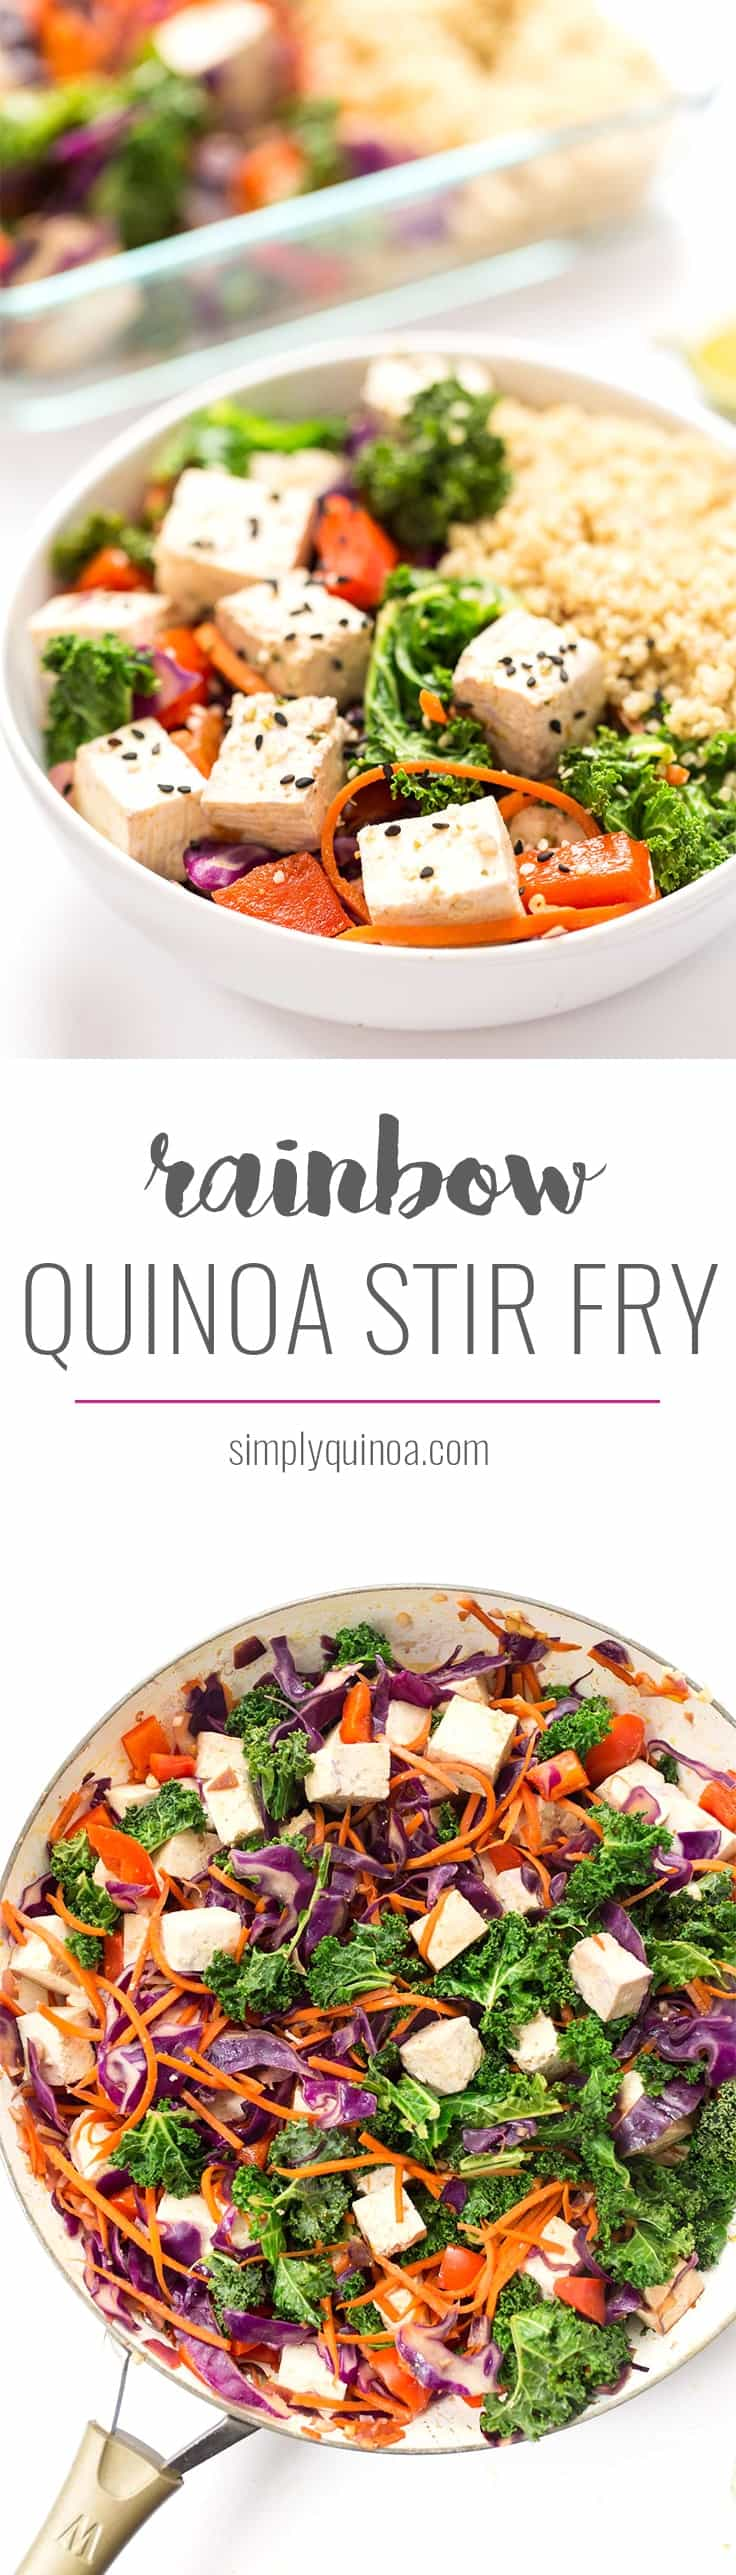 This rainbow vegetable quinoa stir fry is a one-pan meal that is ready in under 20 minutes. Easy to make, simple ingredients and over 17g of plant-based protein per serving!